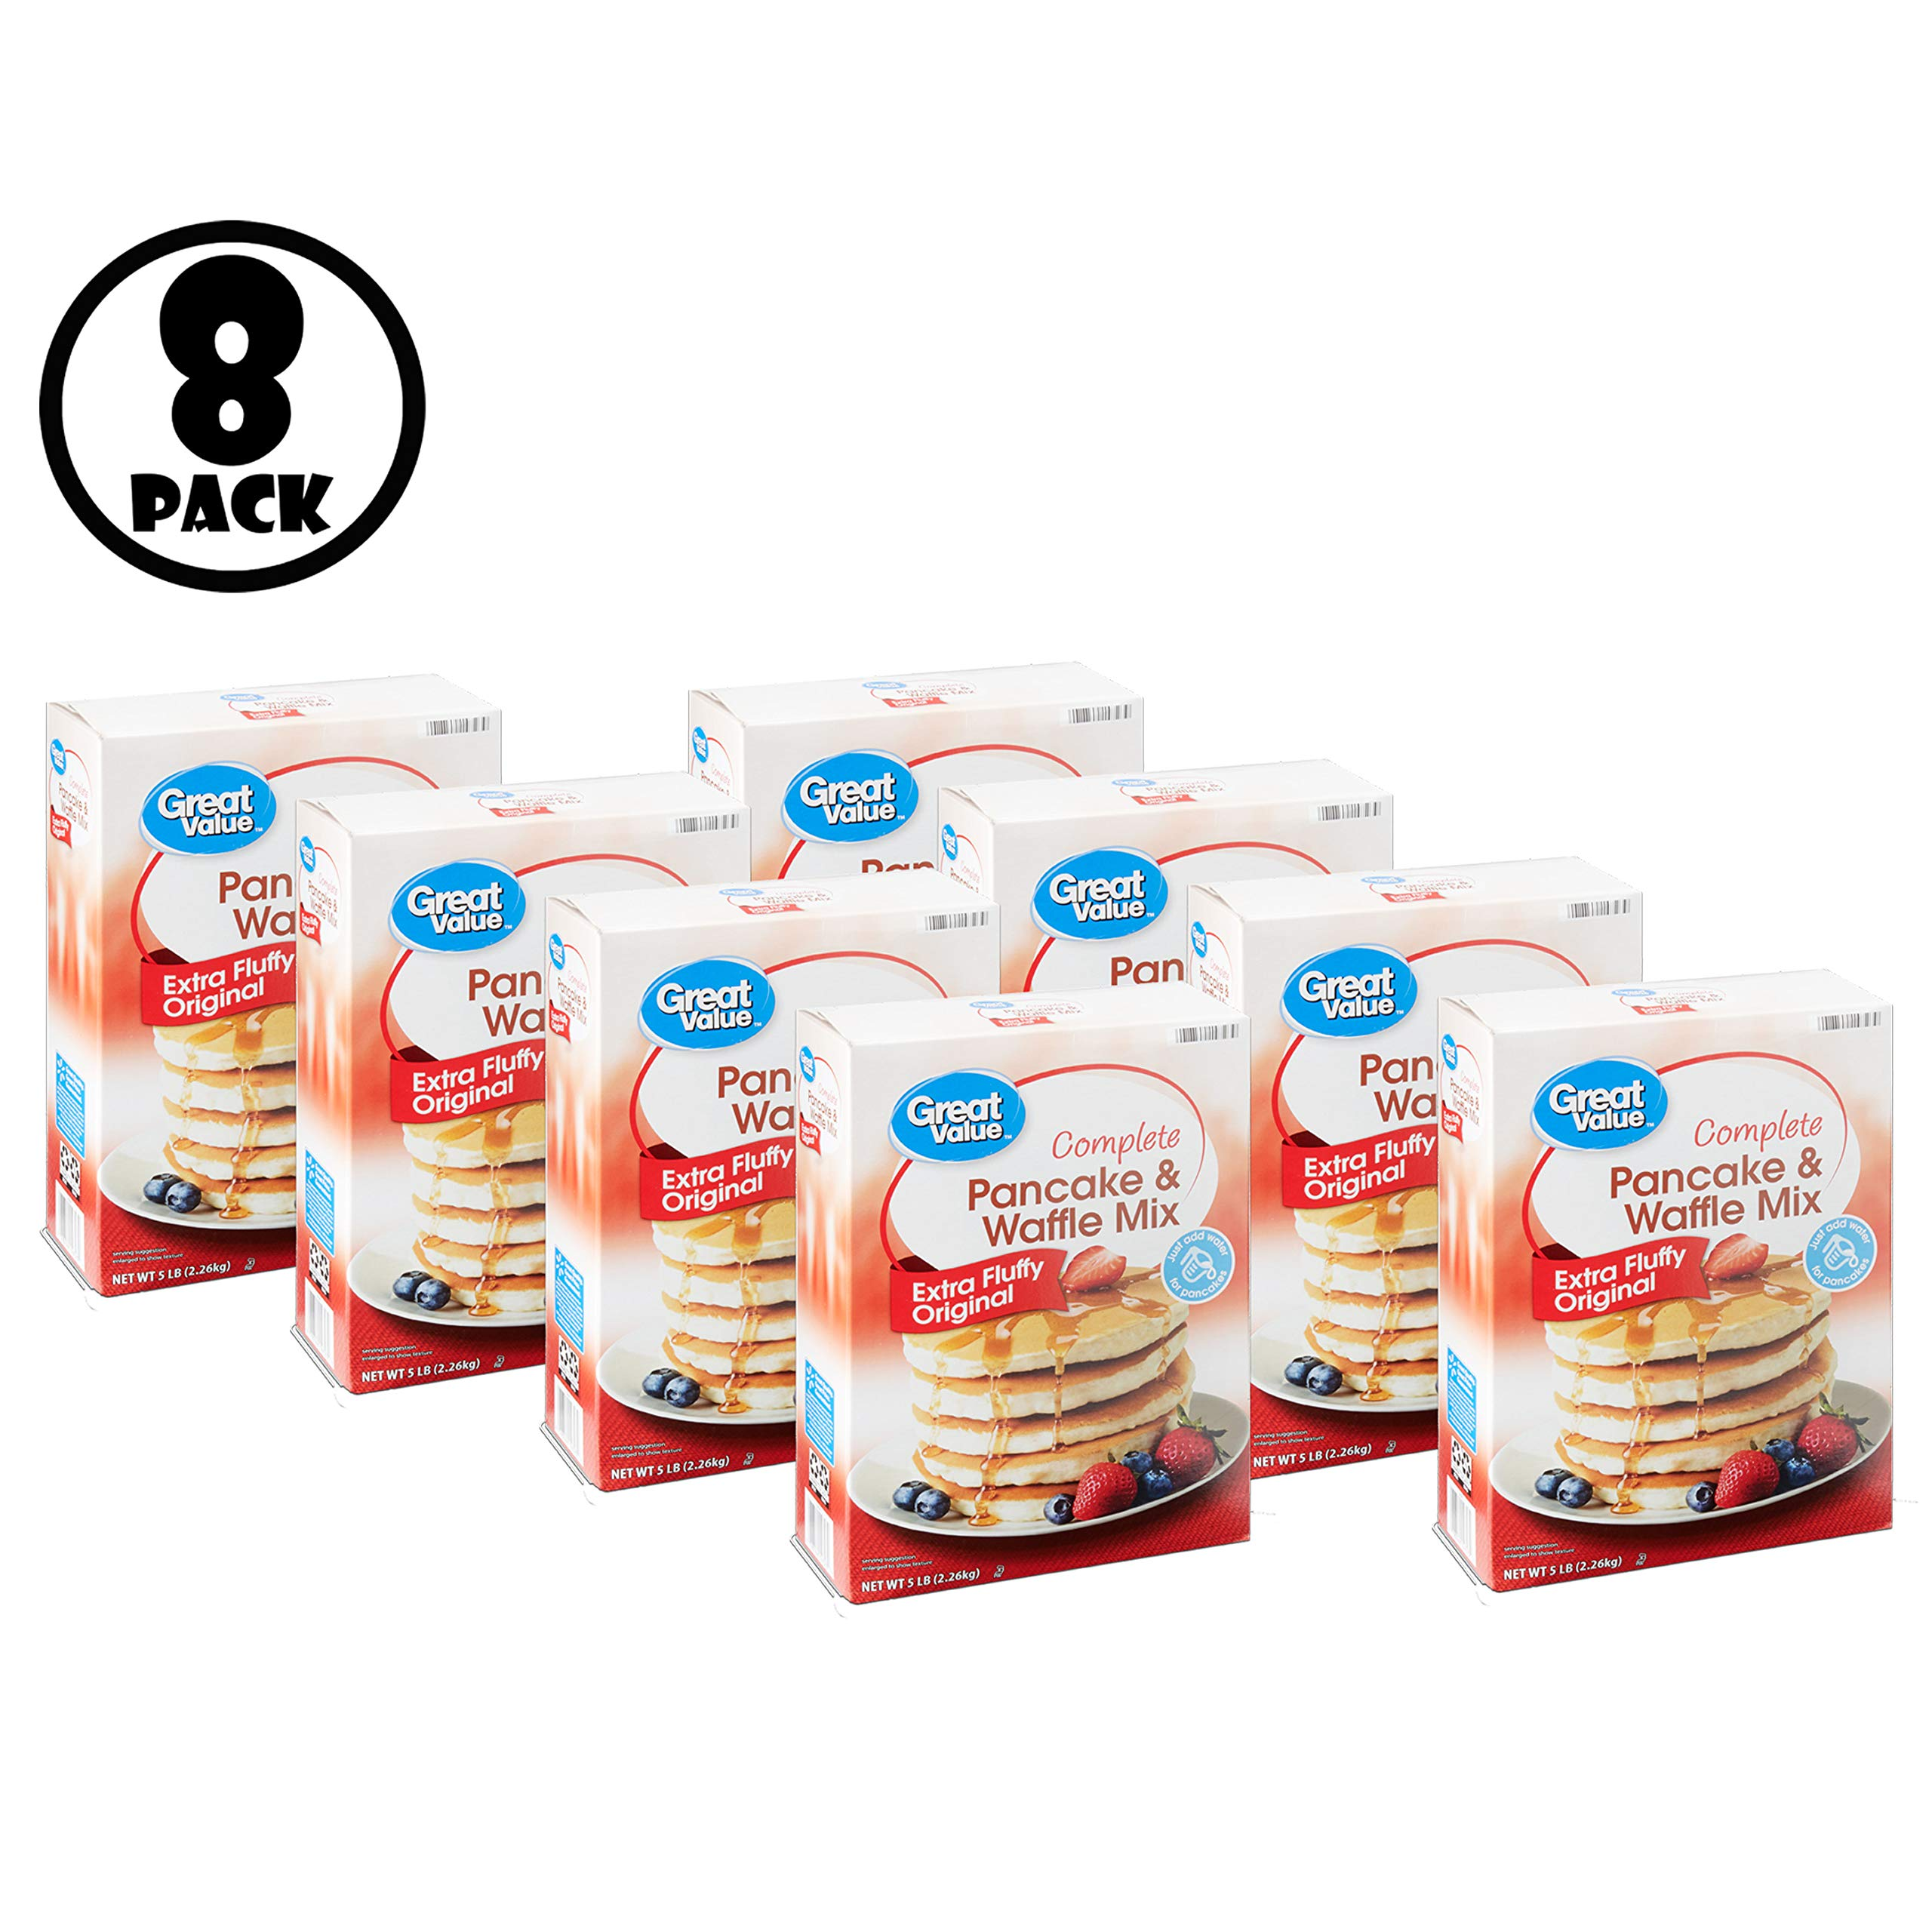 (Pack of 8) Great Value Complete Original Pancake & Waffle Mix Family Size, 80 Oz